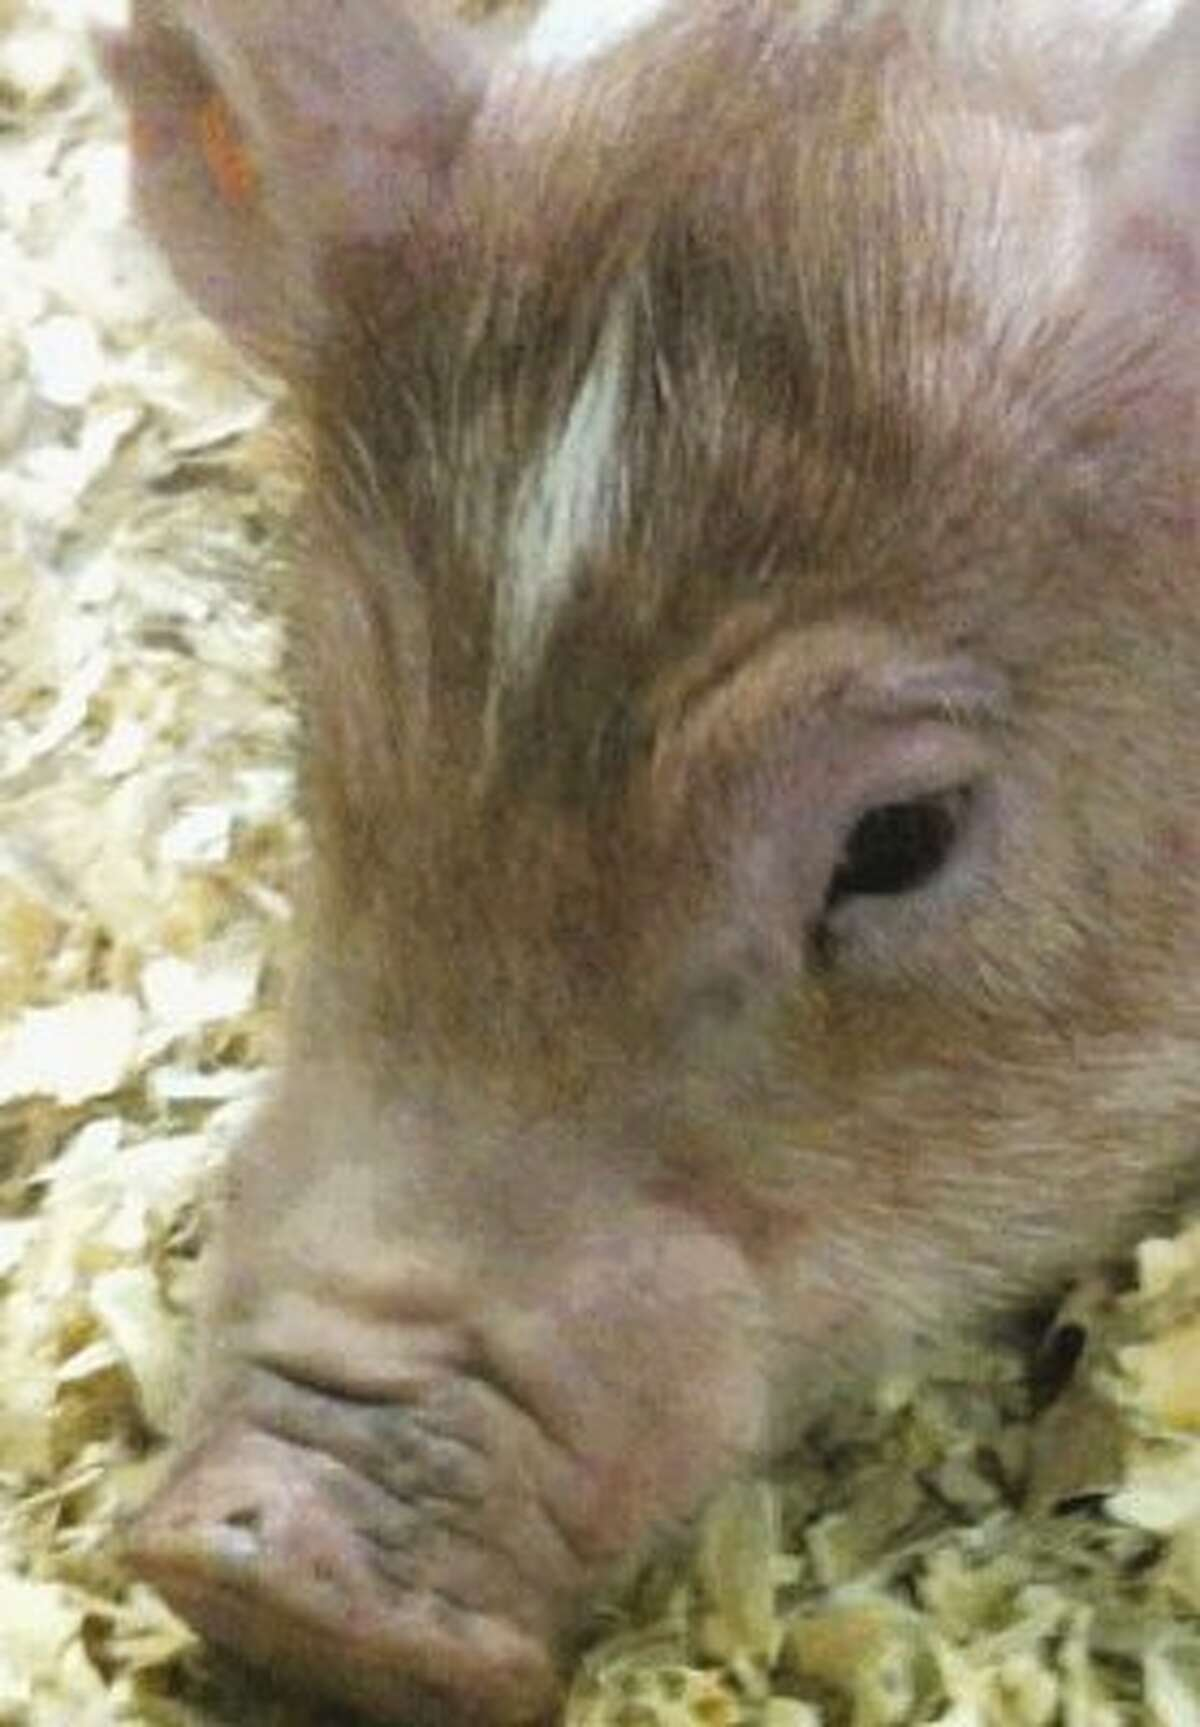 A student's pig at the Kingwood FFA ag barn was injured in what is believed to be an attack by an unknown person.